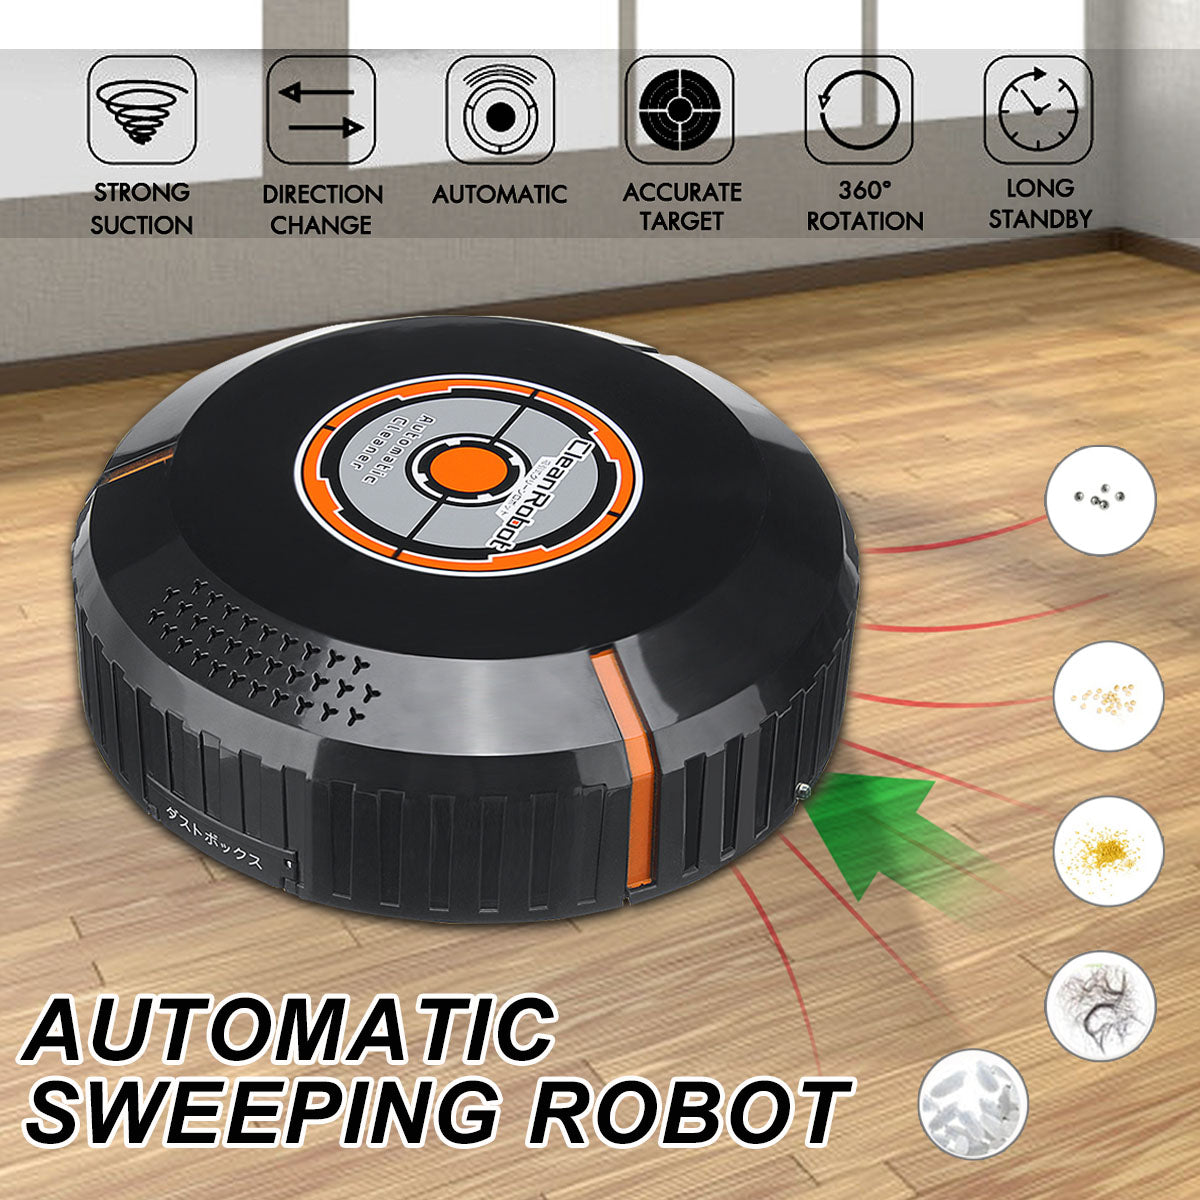 We Vacuum™ Automatic USB Rechargeable Smart Sweeping Robot Vacuum Floor Cleaner Sweeper Vacuum Cleaner - Black